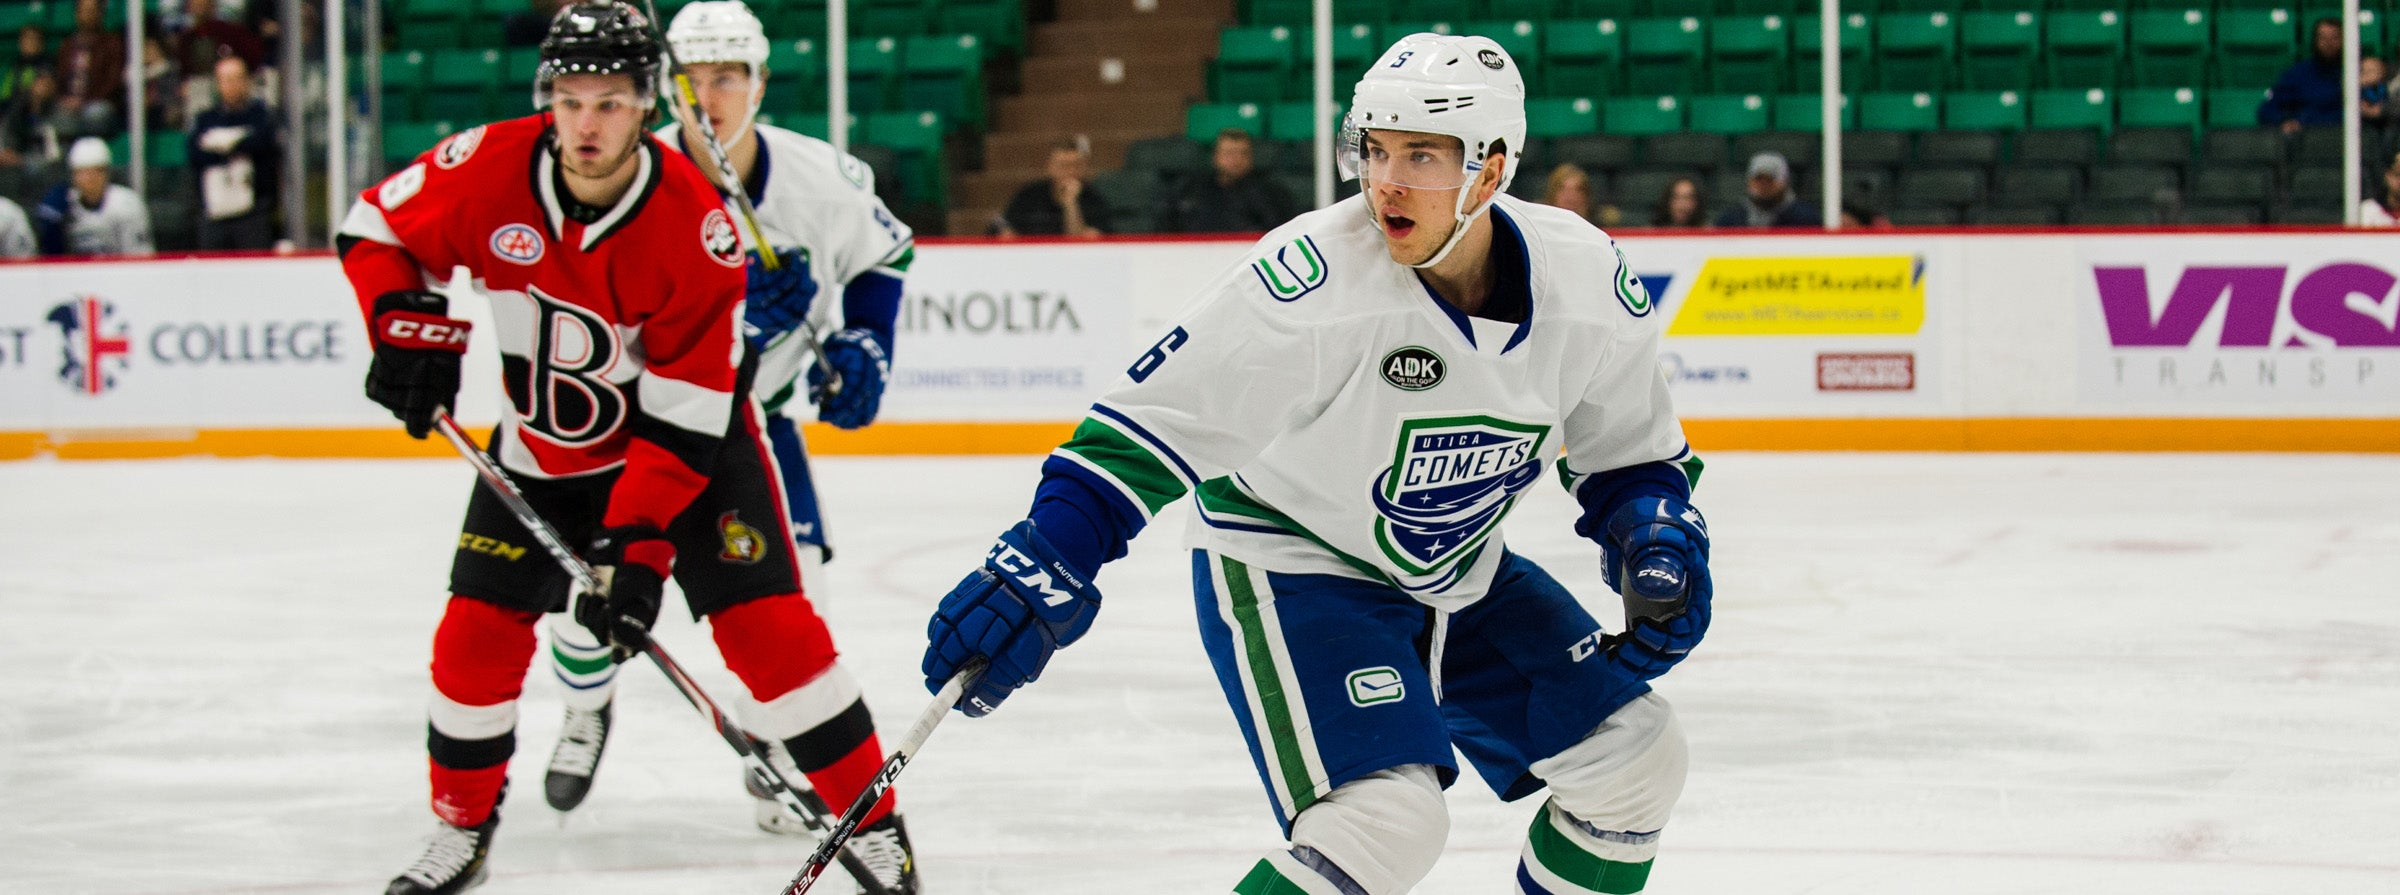 COMETS COME FROM BEHIND FOR DIVISIONAL WIN IN BELLEVILLE